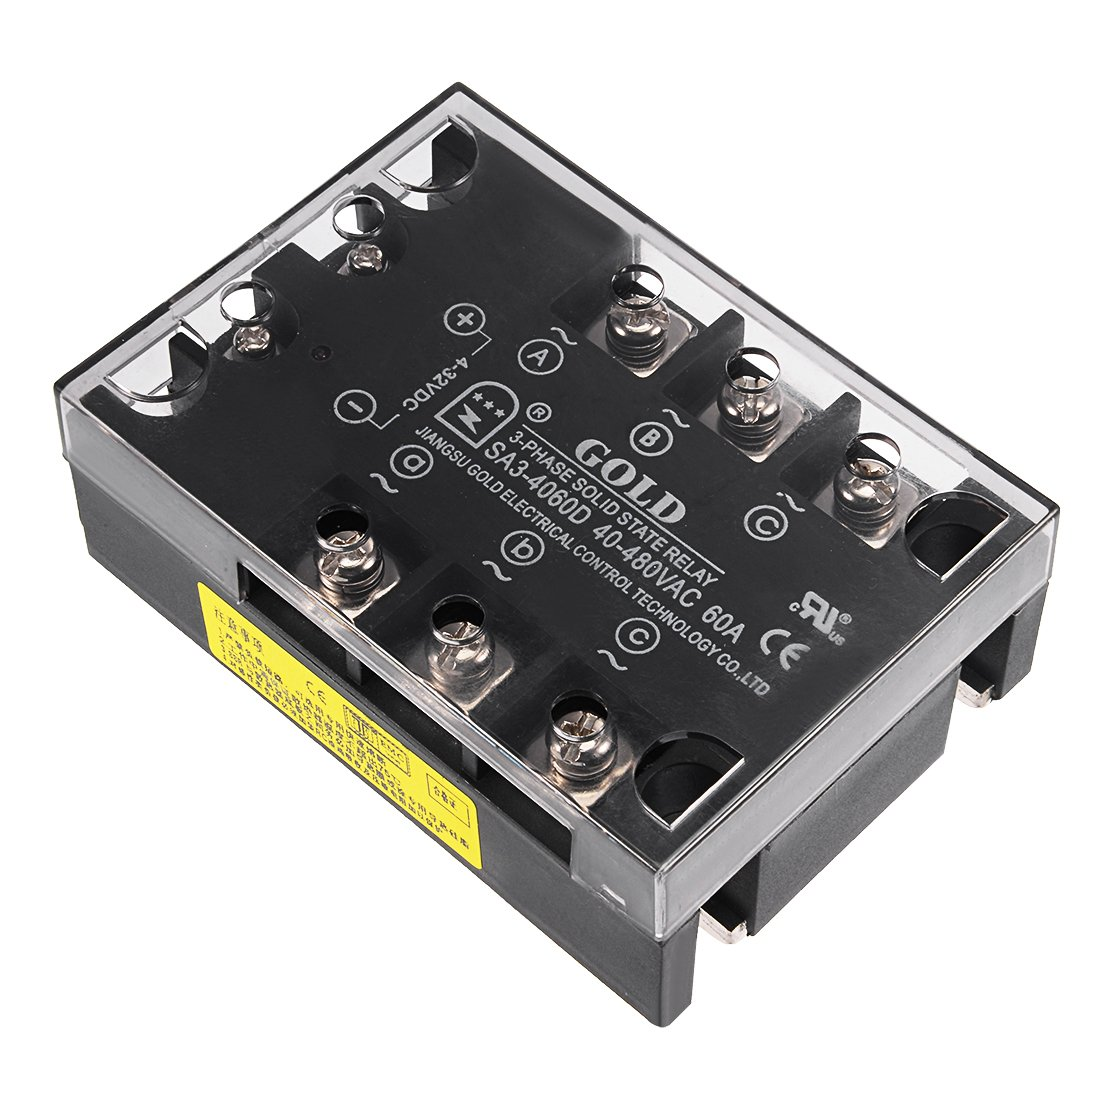 uxcell SA34060D 4-32VDC to 40-480VAC 60A Three Phase Solid State Relay Module DC to AC by uxcell